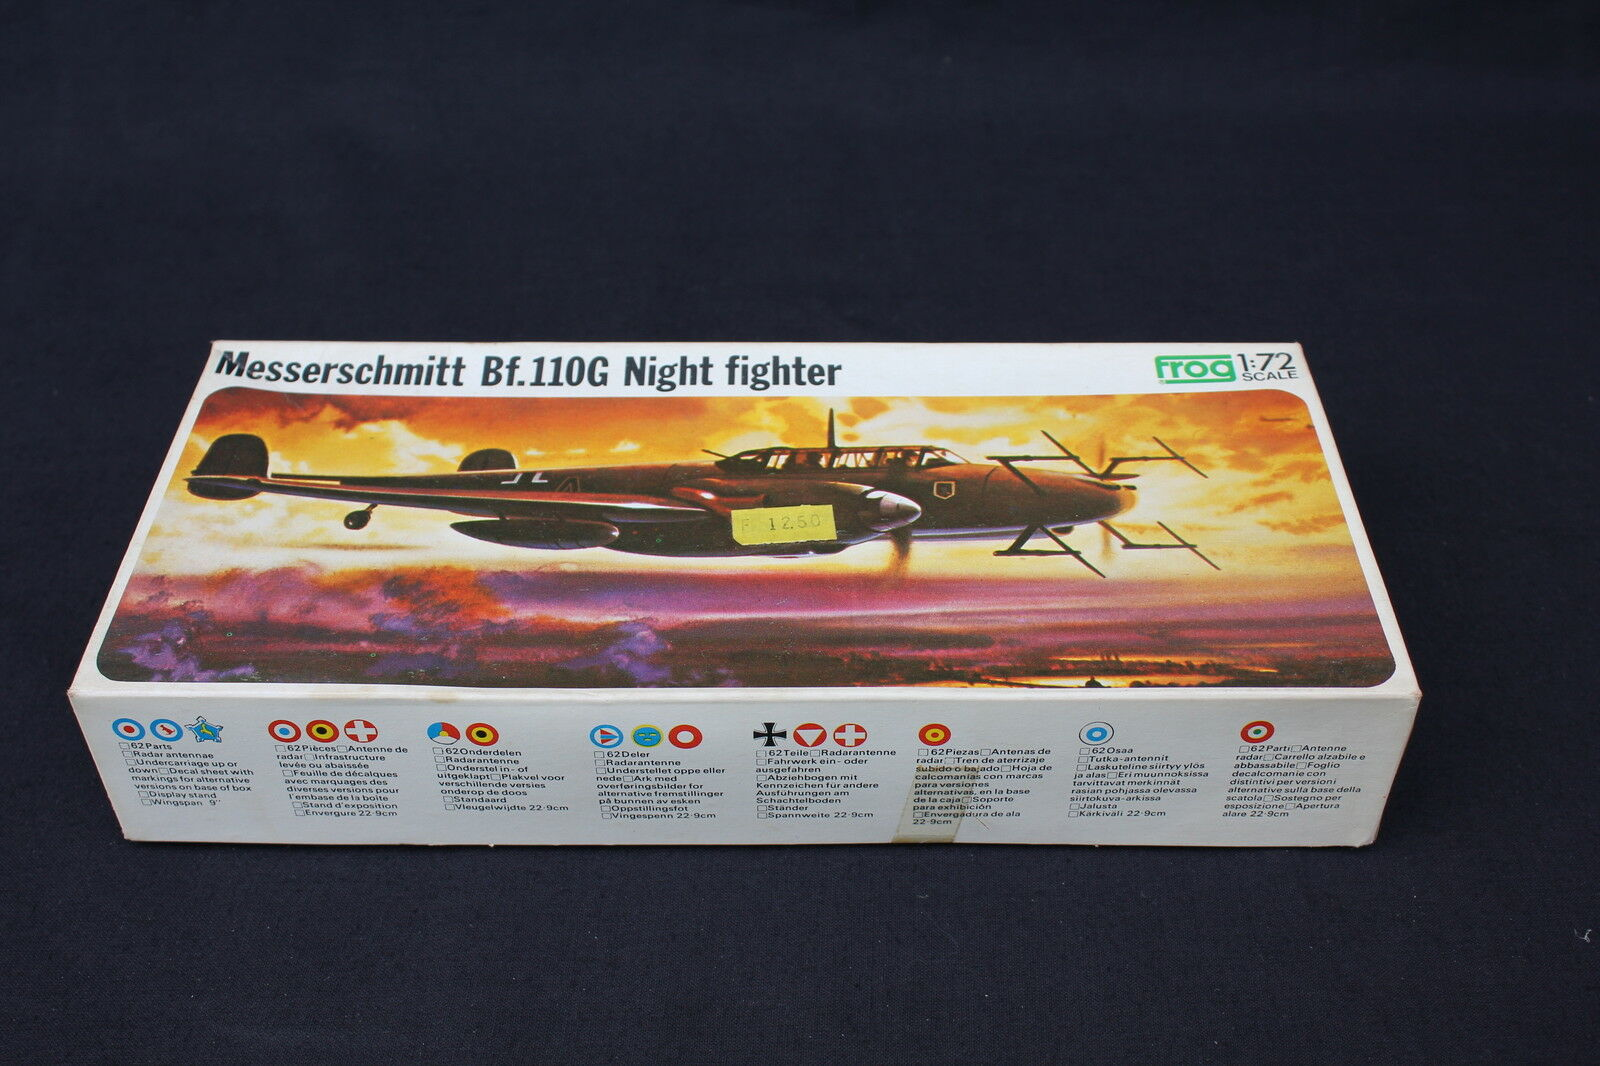 U735 FROG 1/72 avion MESSERSCHMITT MESSERSCHMITT MESSERSCHMITT Bf.110G F202 Night Fighter 1972 938aaf